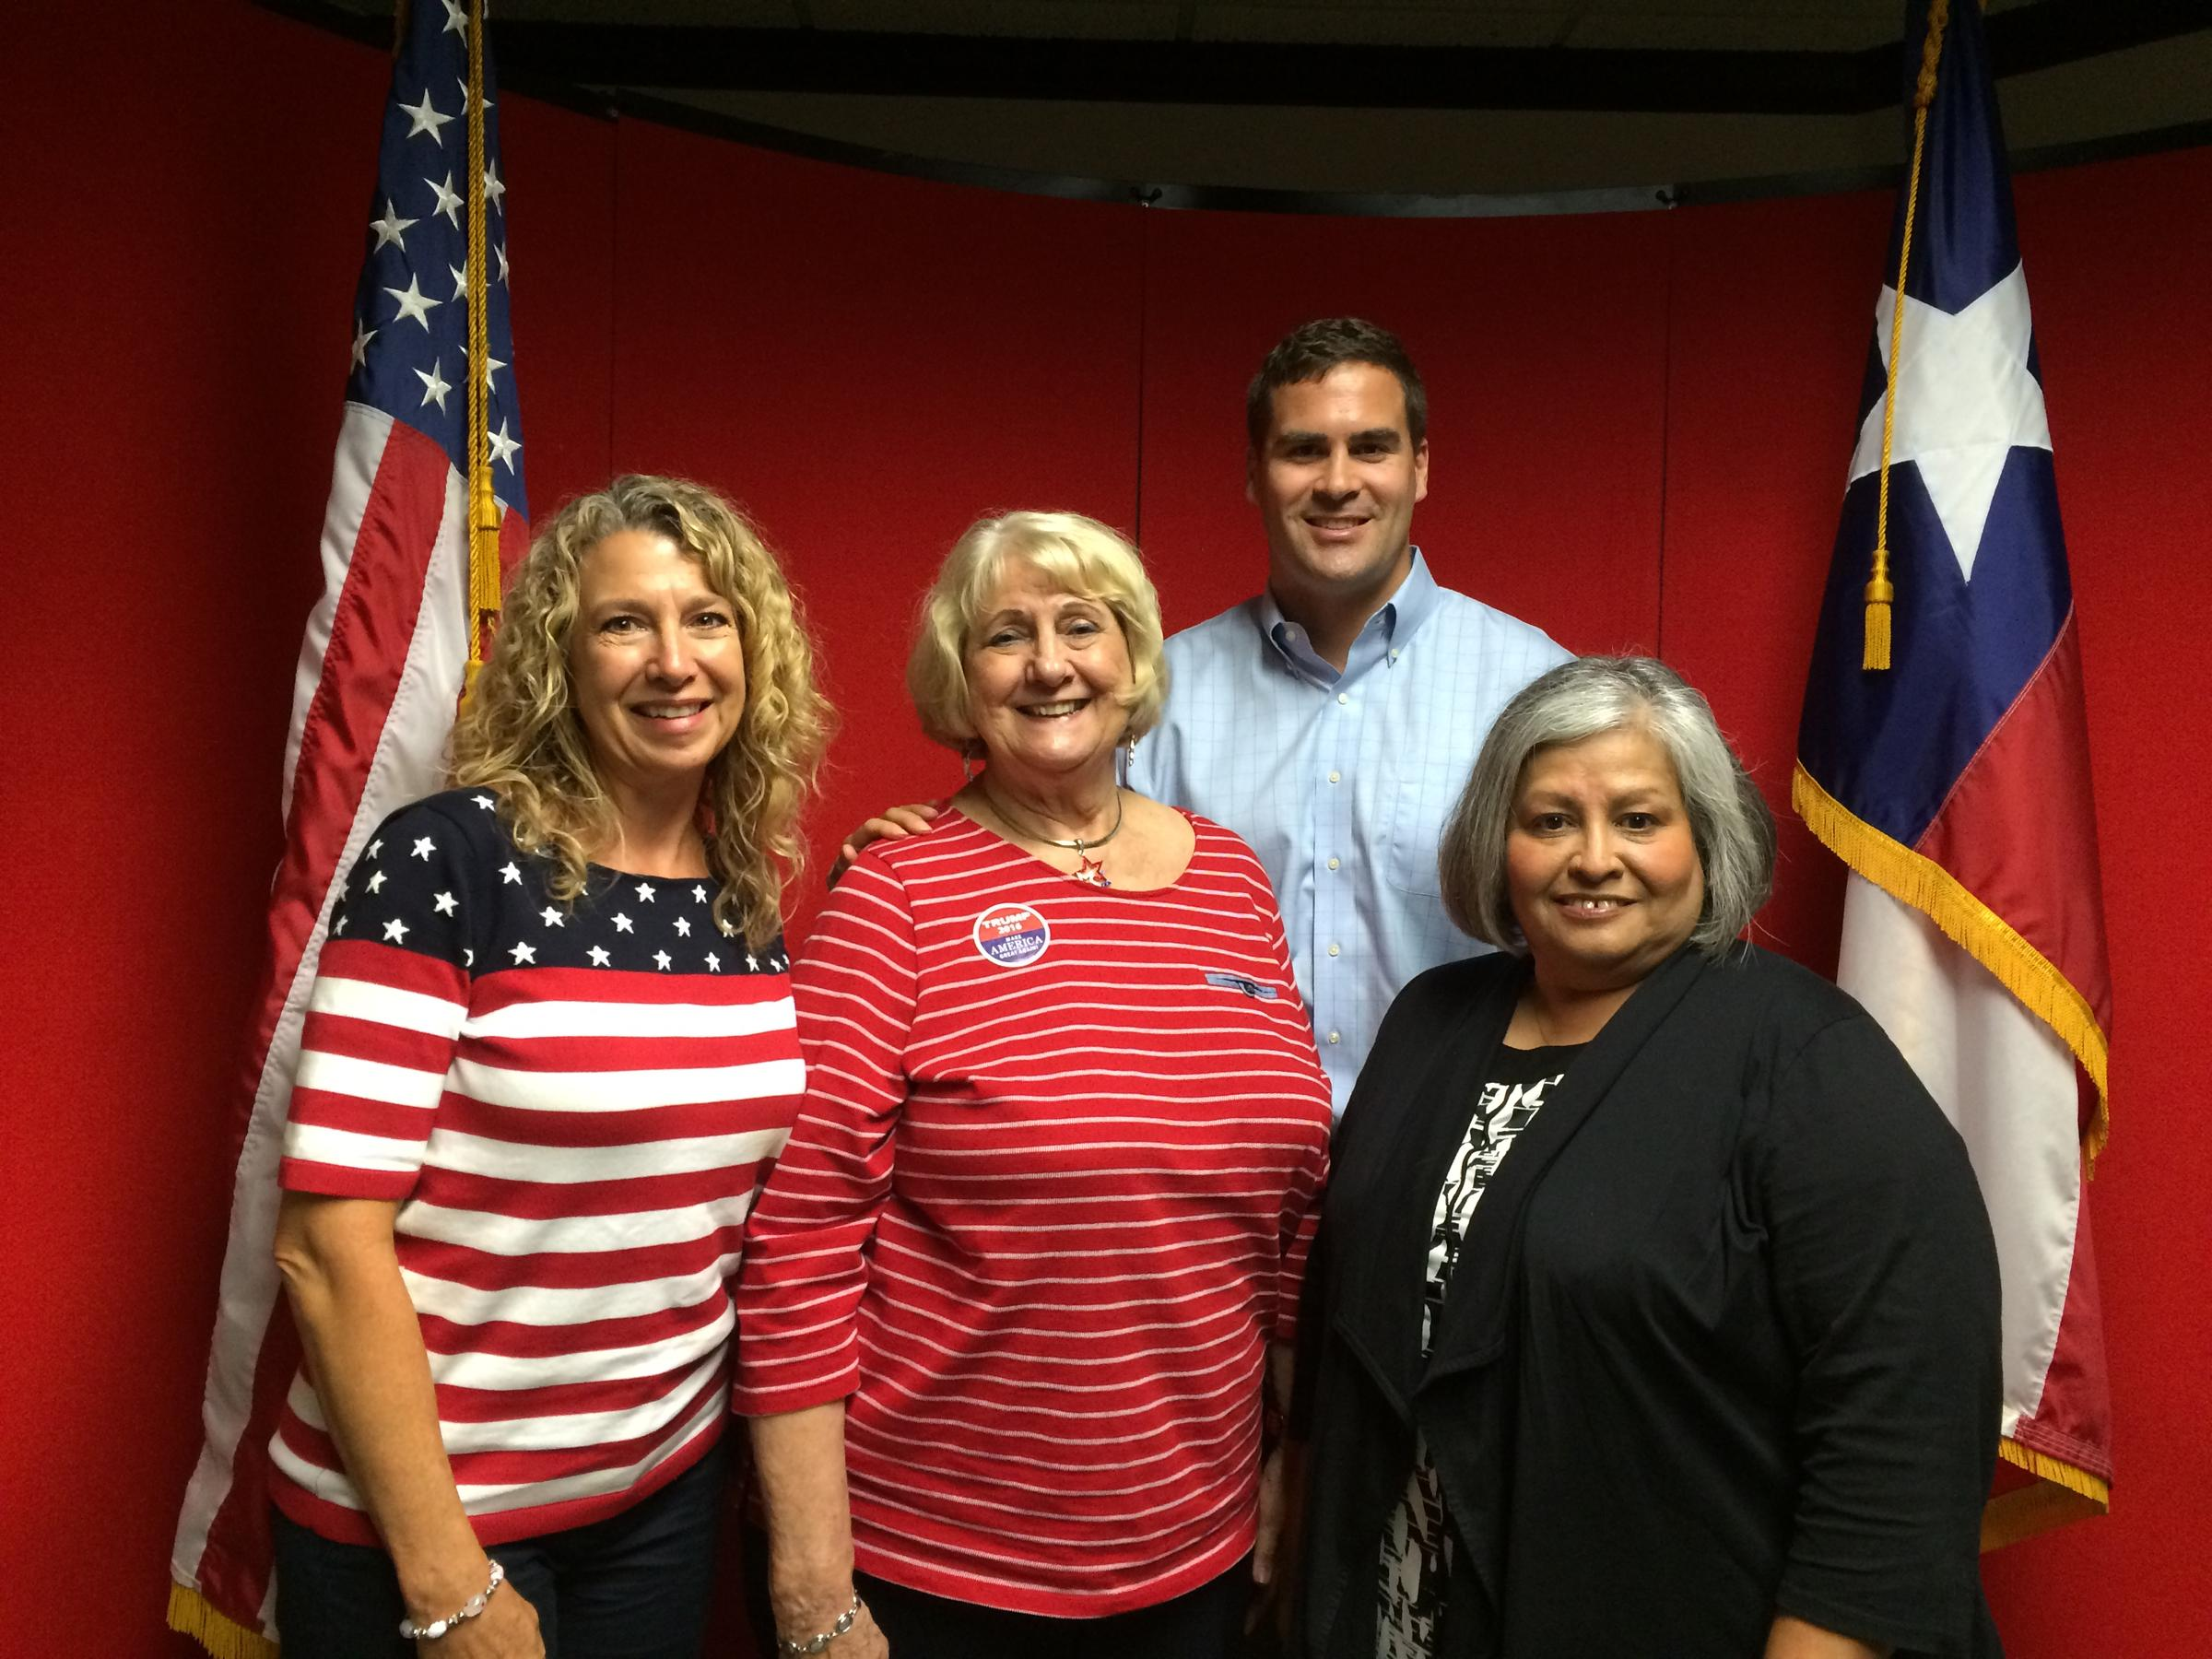 Bexar County GOP delegates to the national convention Lisa Nilsson Ginny Shannon Grant Moody Gina Castaneda